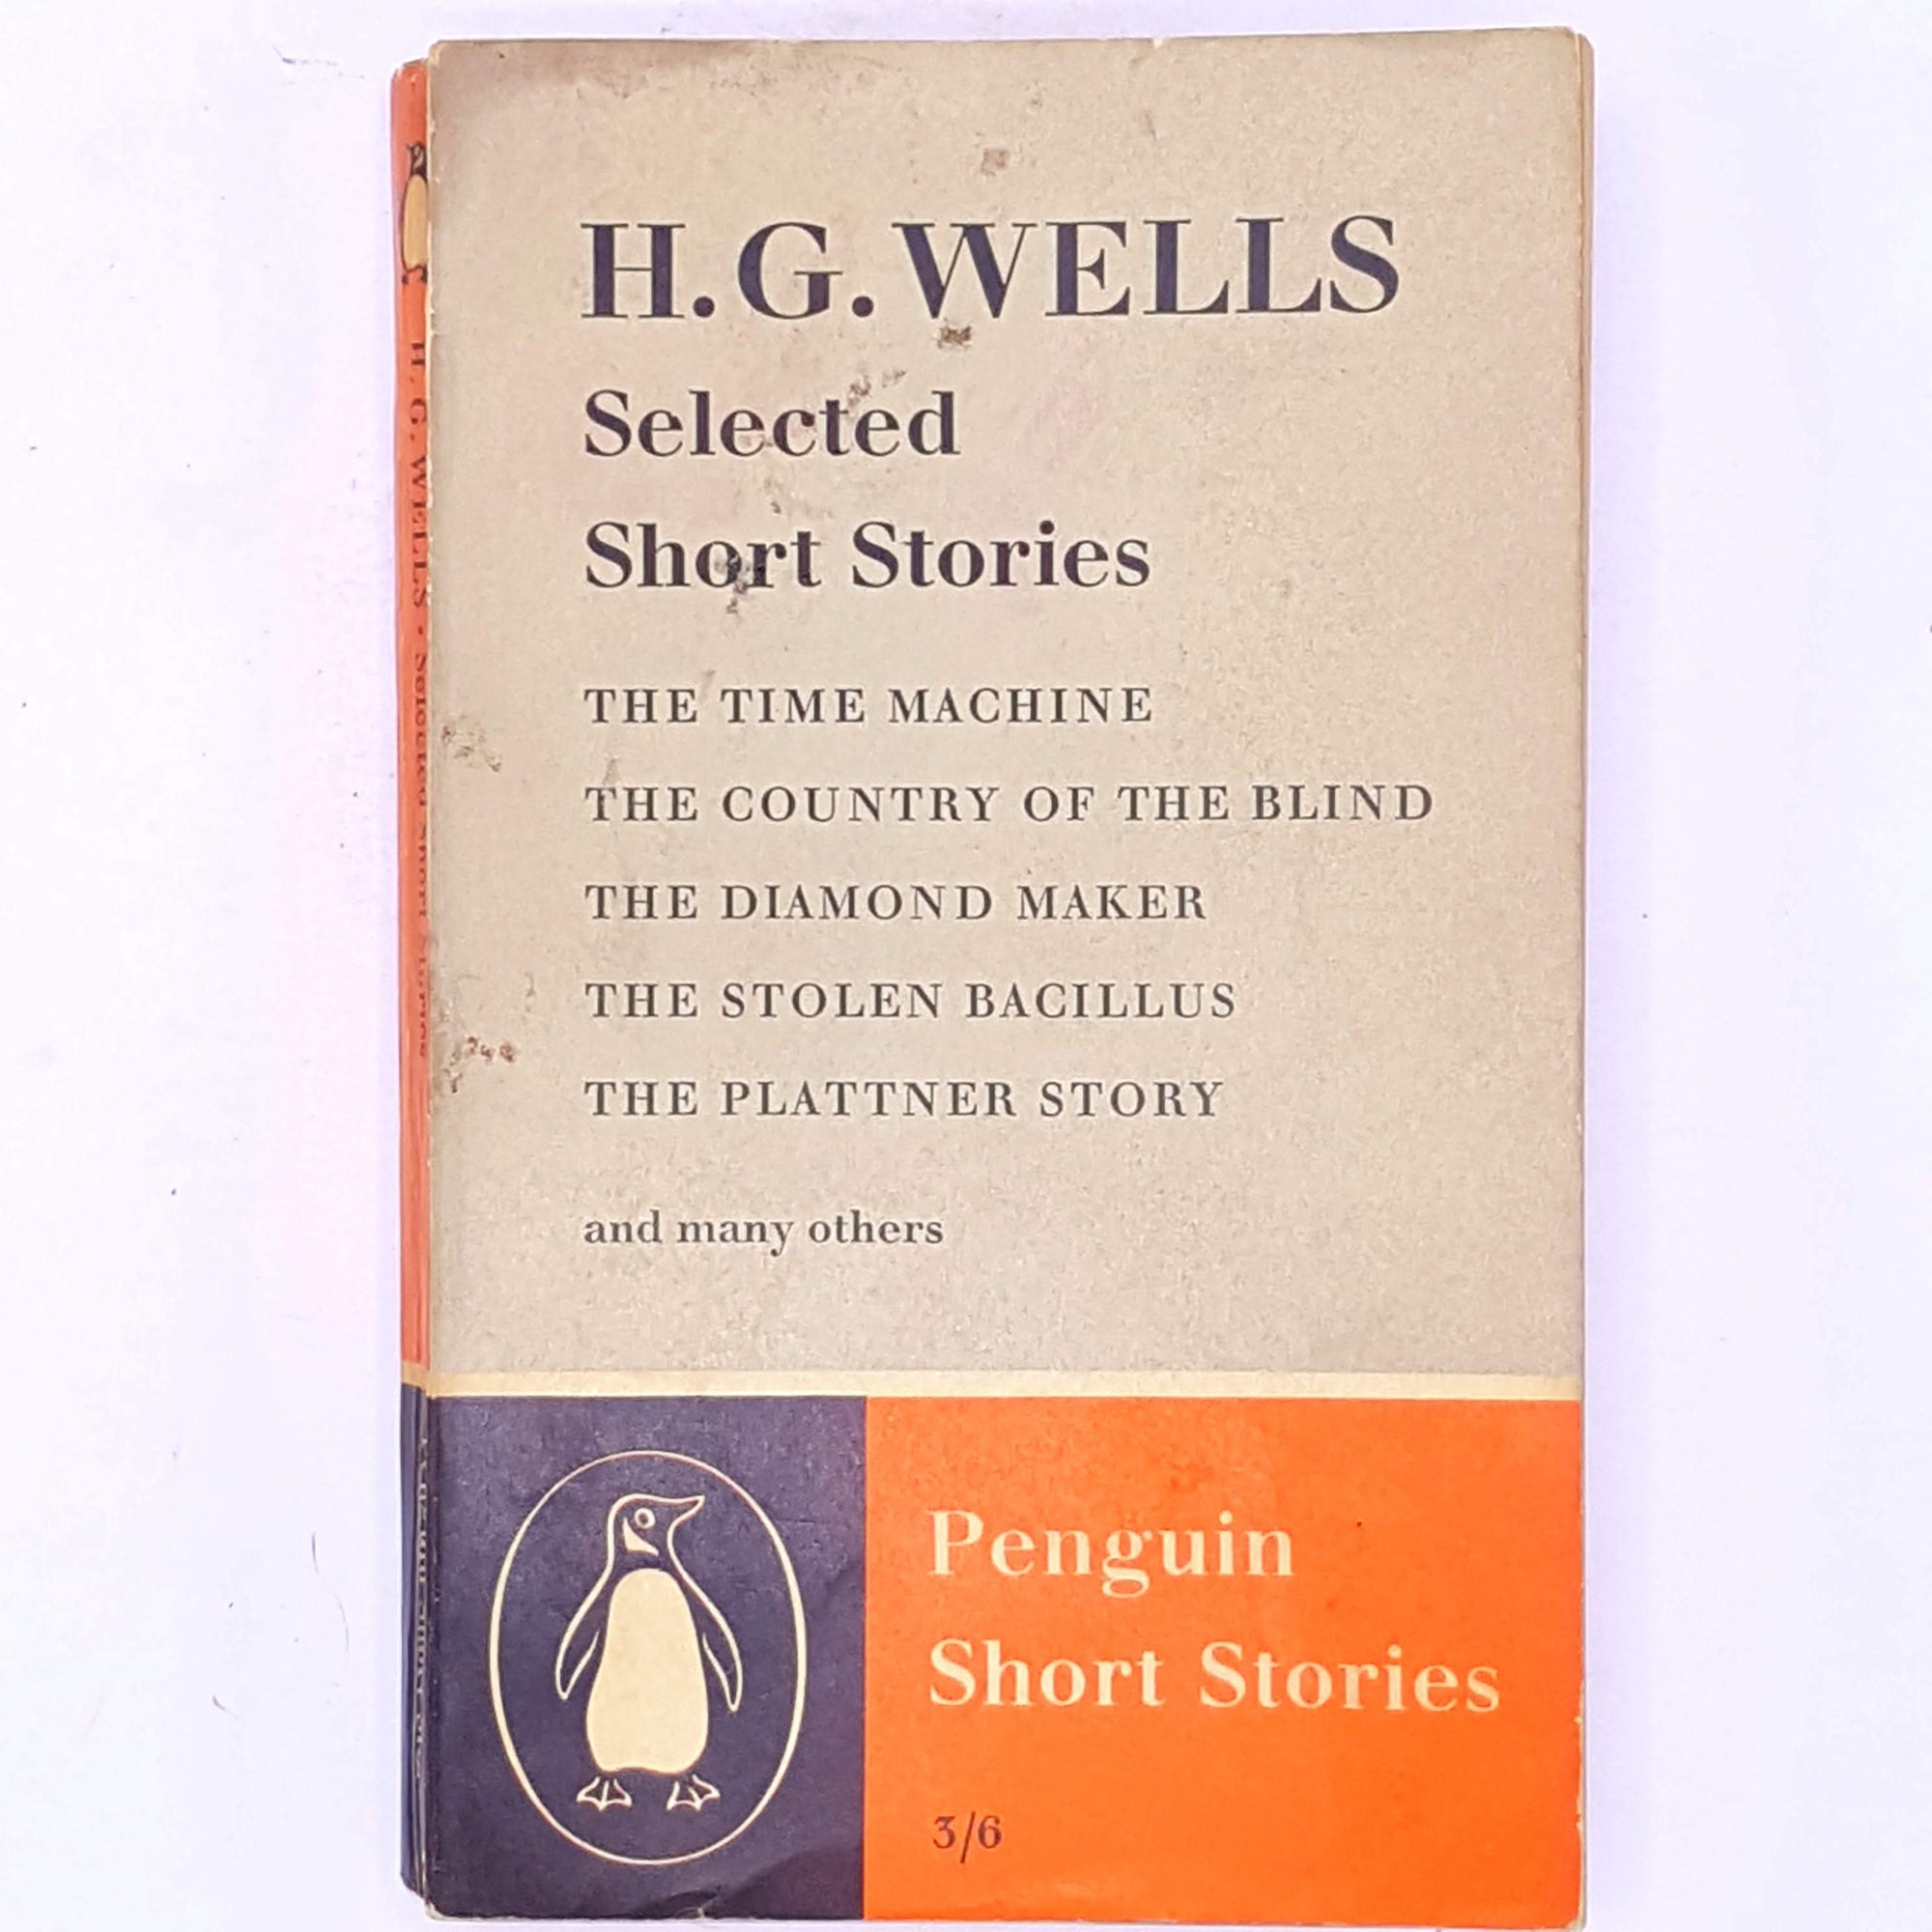 H.G. Wells, Penguin Selected Short Stories,1958